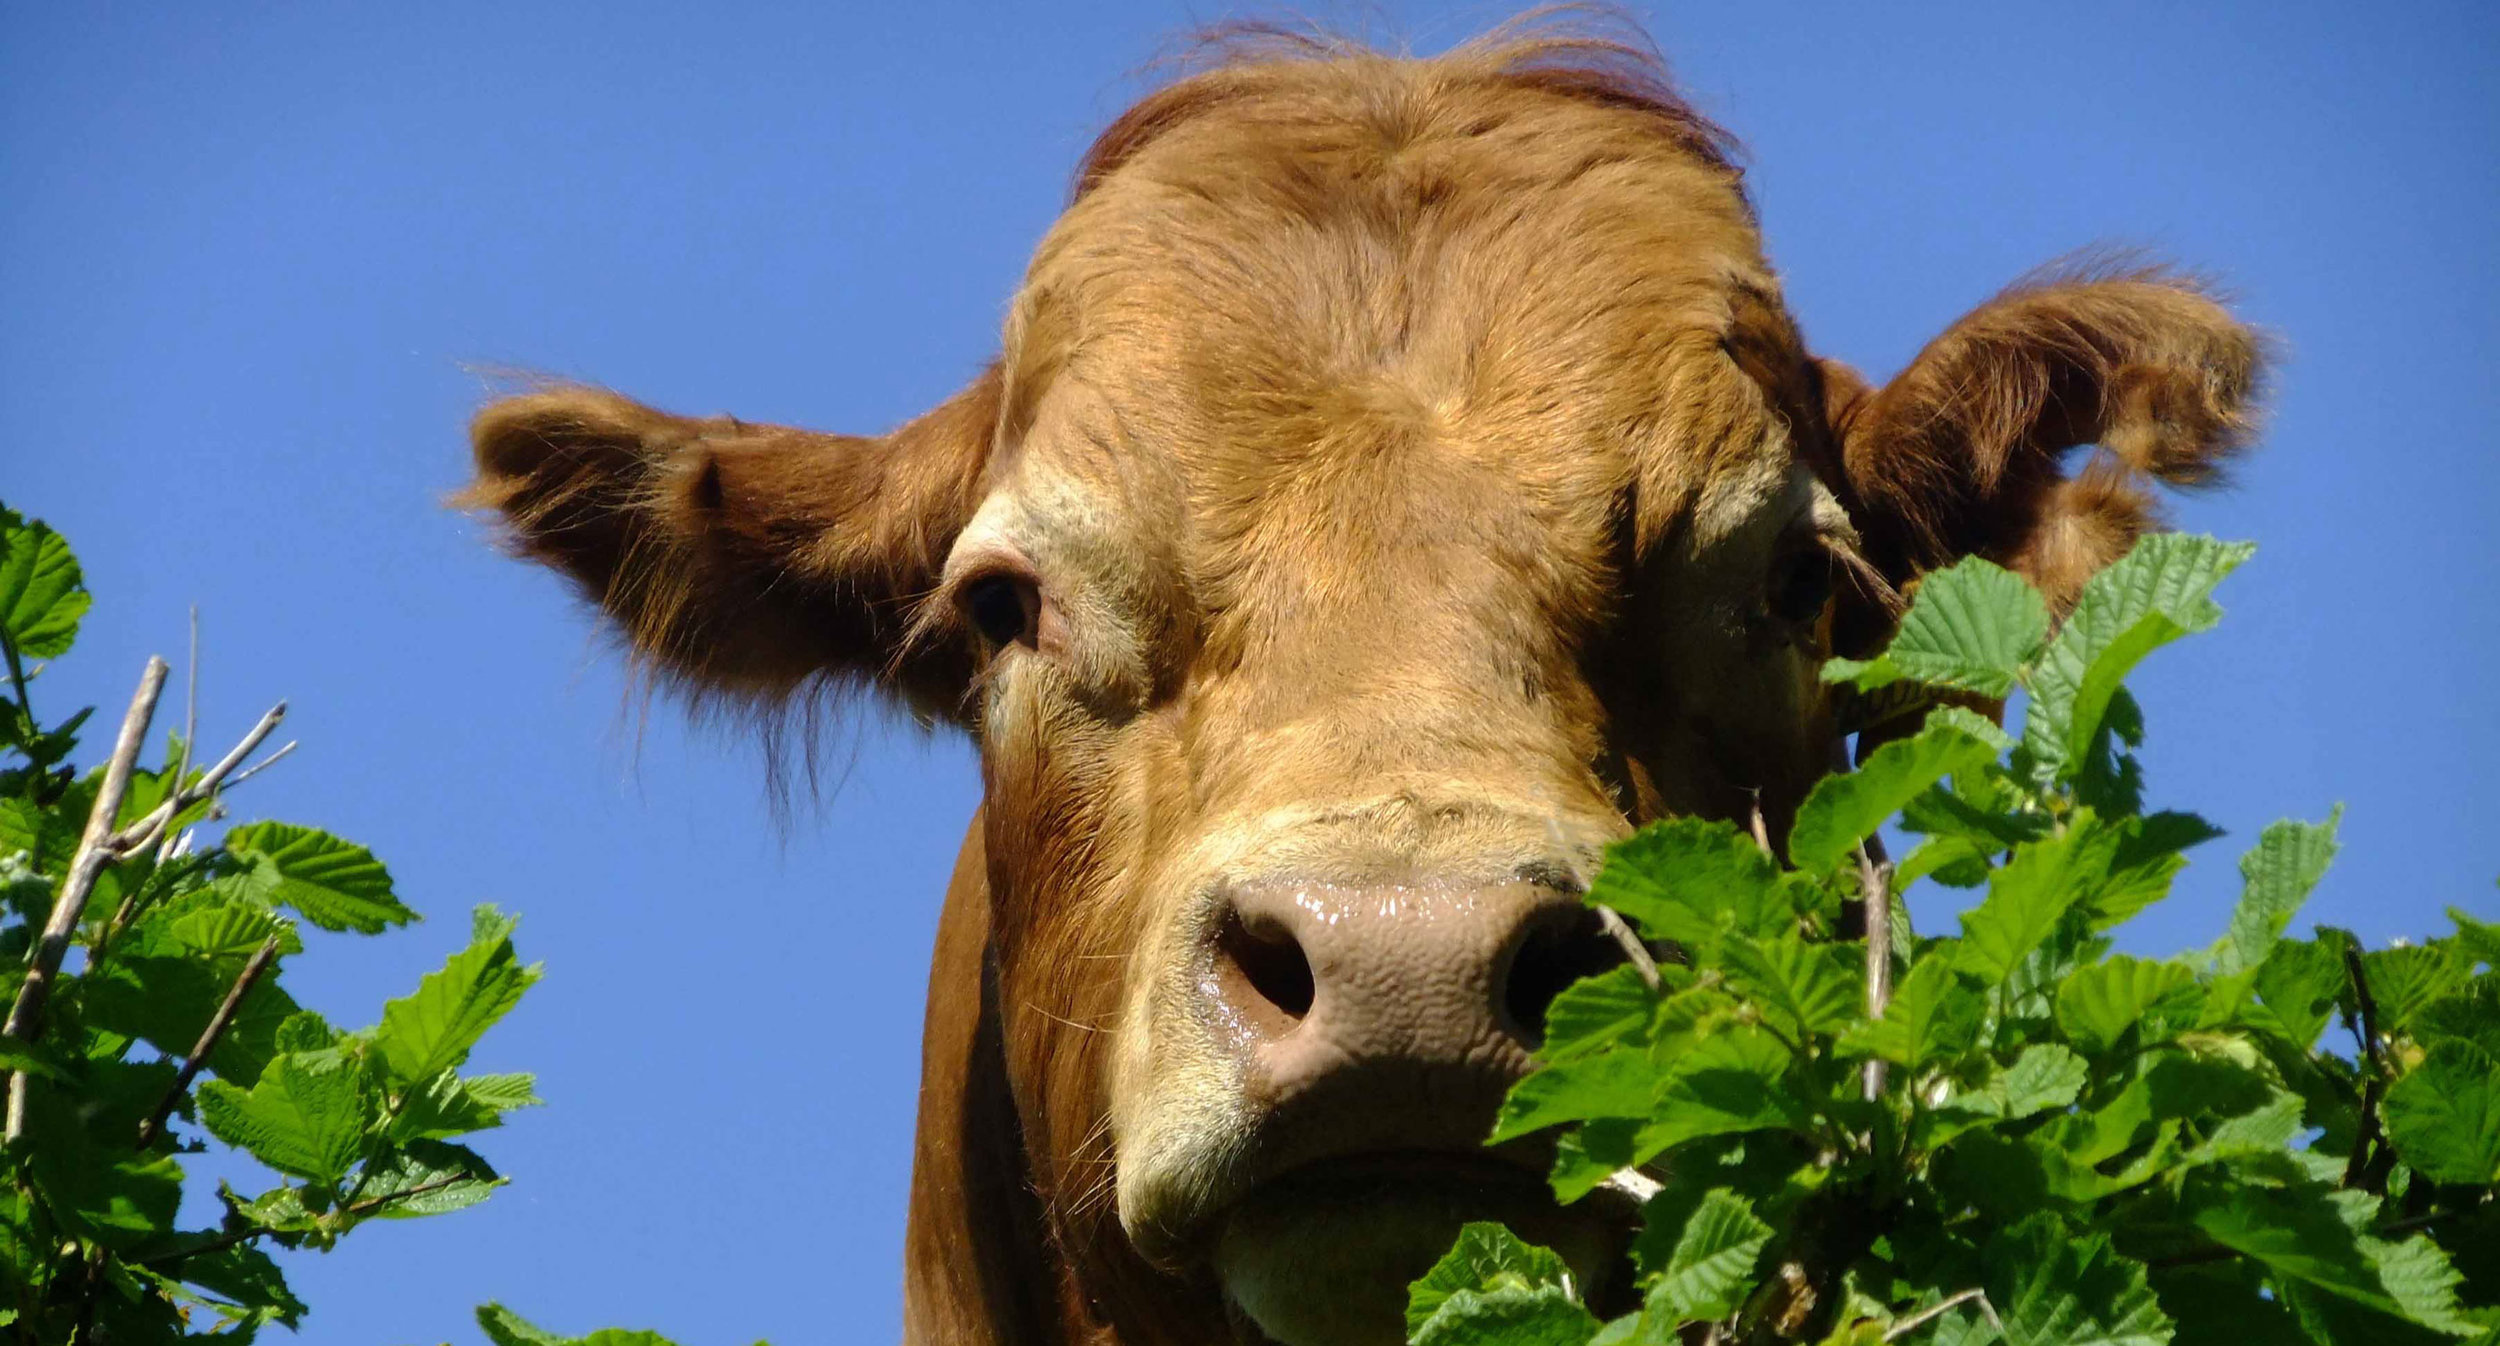 cow_over_a_hedgerow_lores.jpg